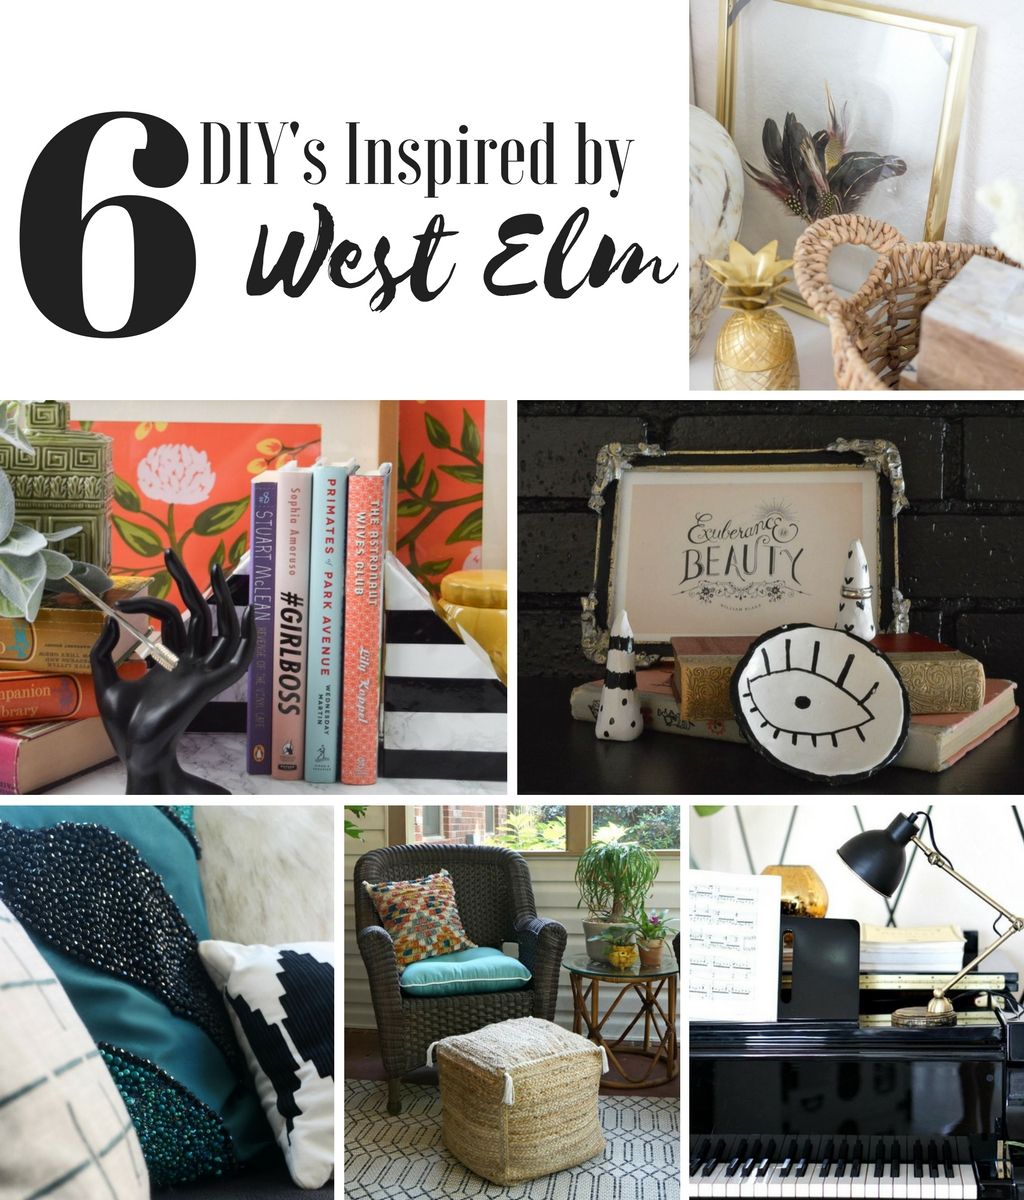 6 DIY's inspired by West Elm by 6 talented bloggers